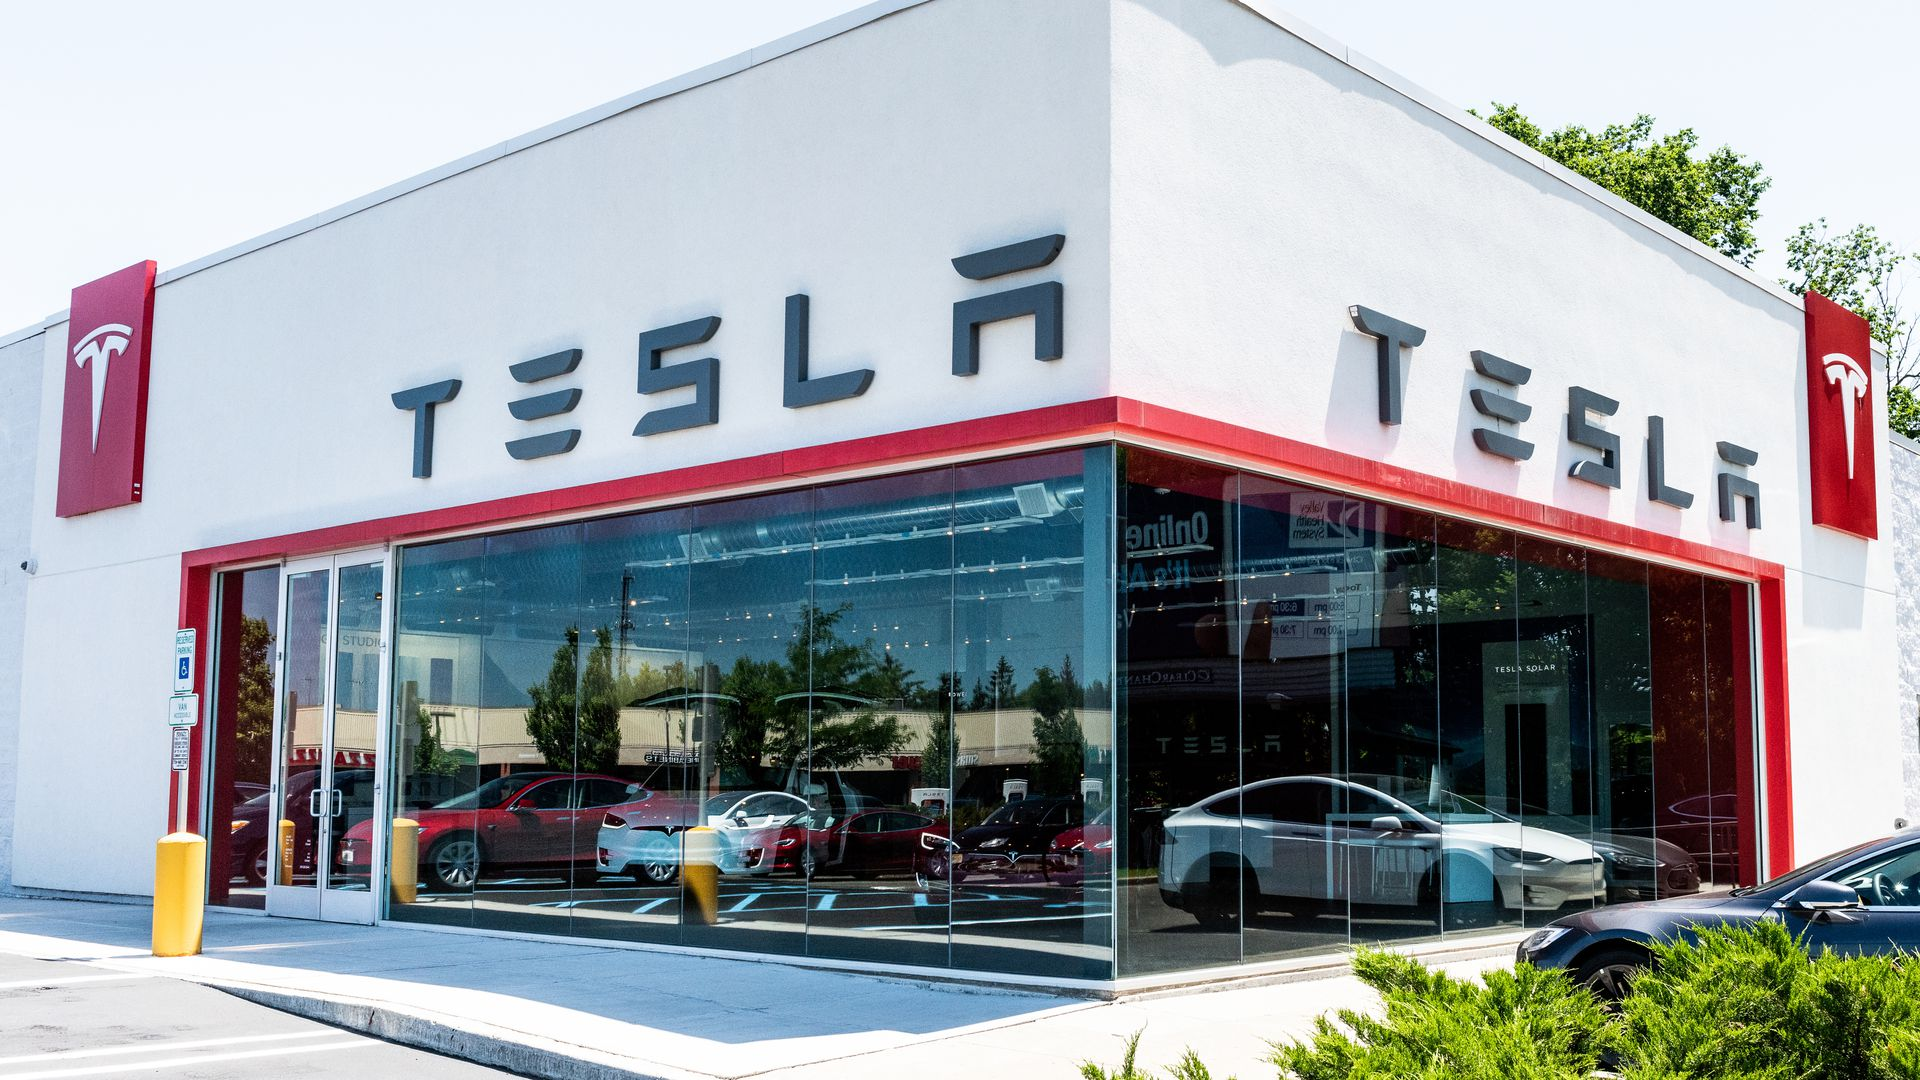 Tesla Begins Recruitment for Sales Positions to Launch Israeli Market Likely 1H 2021